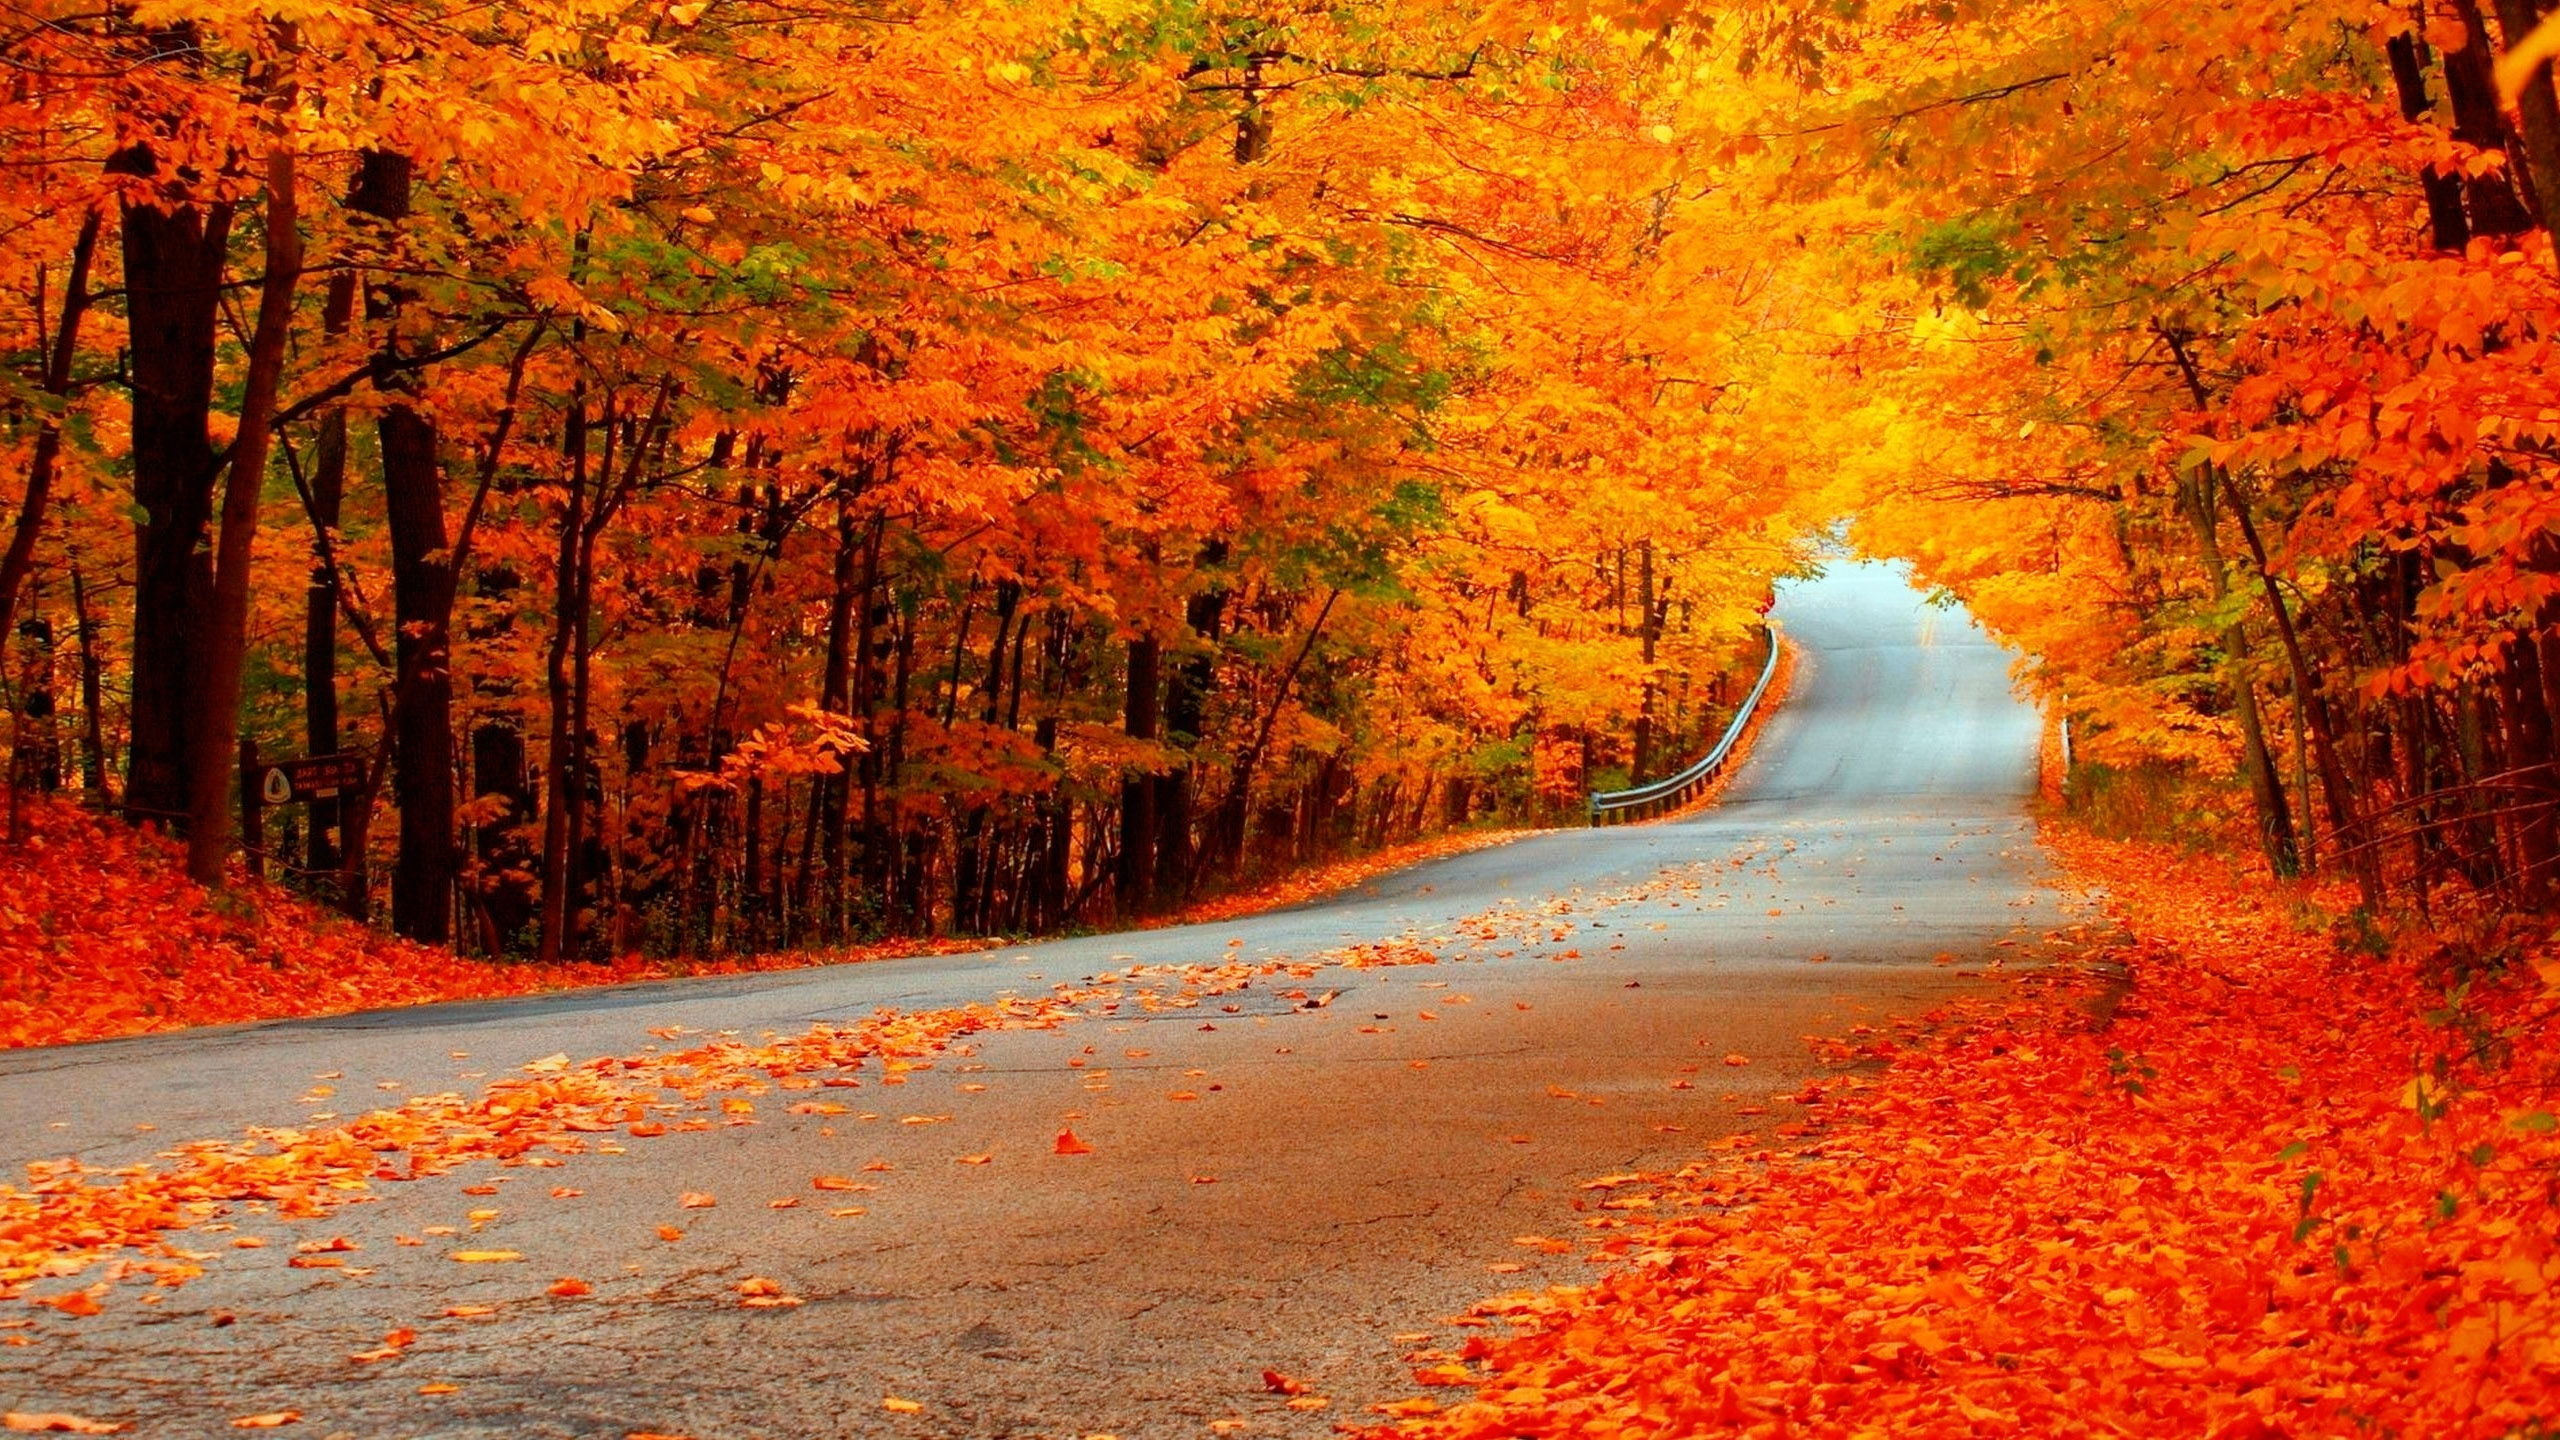 Res: 2560x1440, Man Made - Road Fall Man Made Foliage Orange Tree Forest Wallpaper